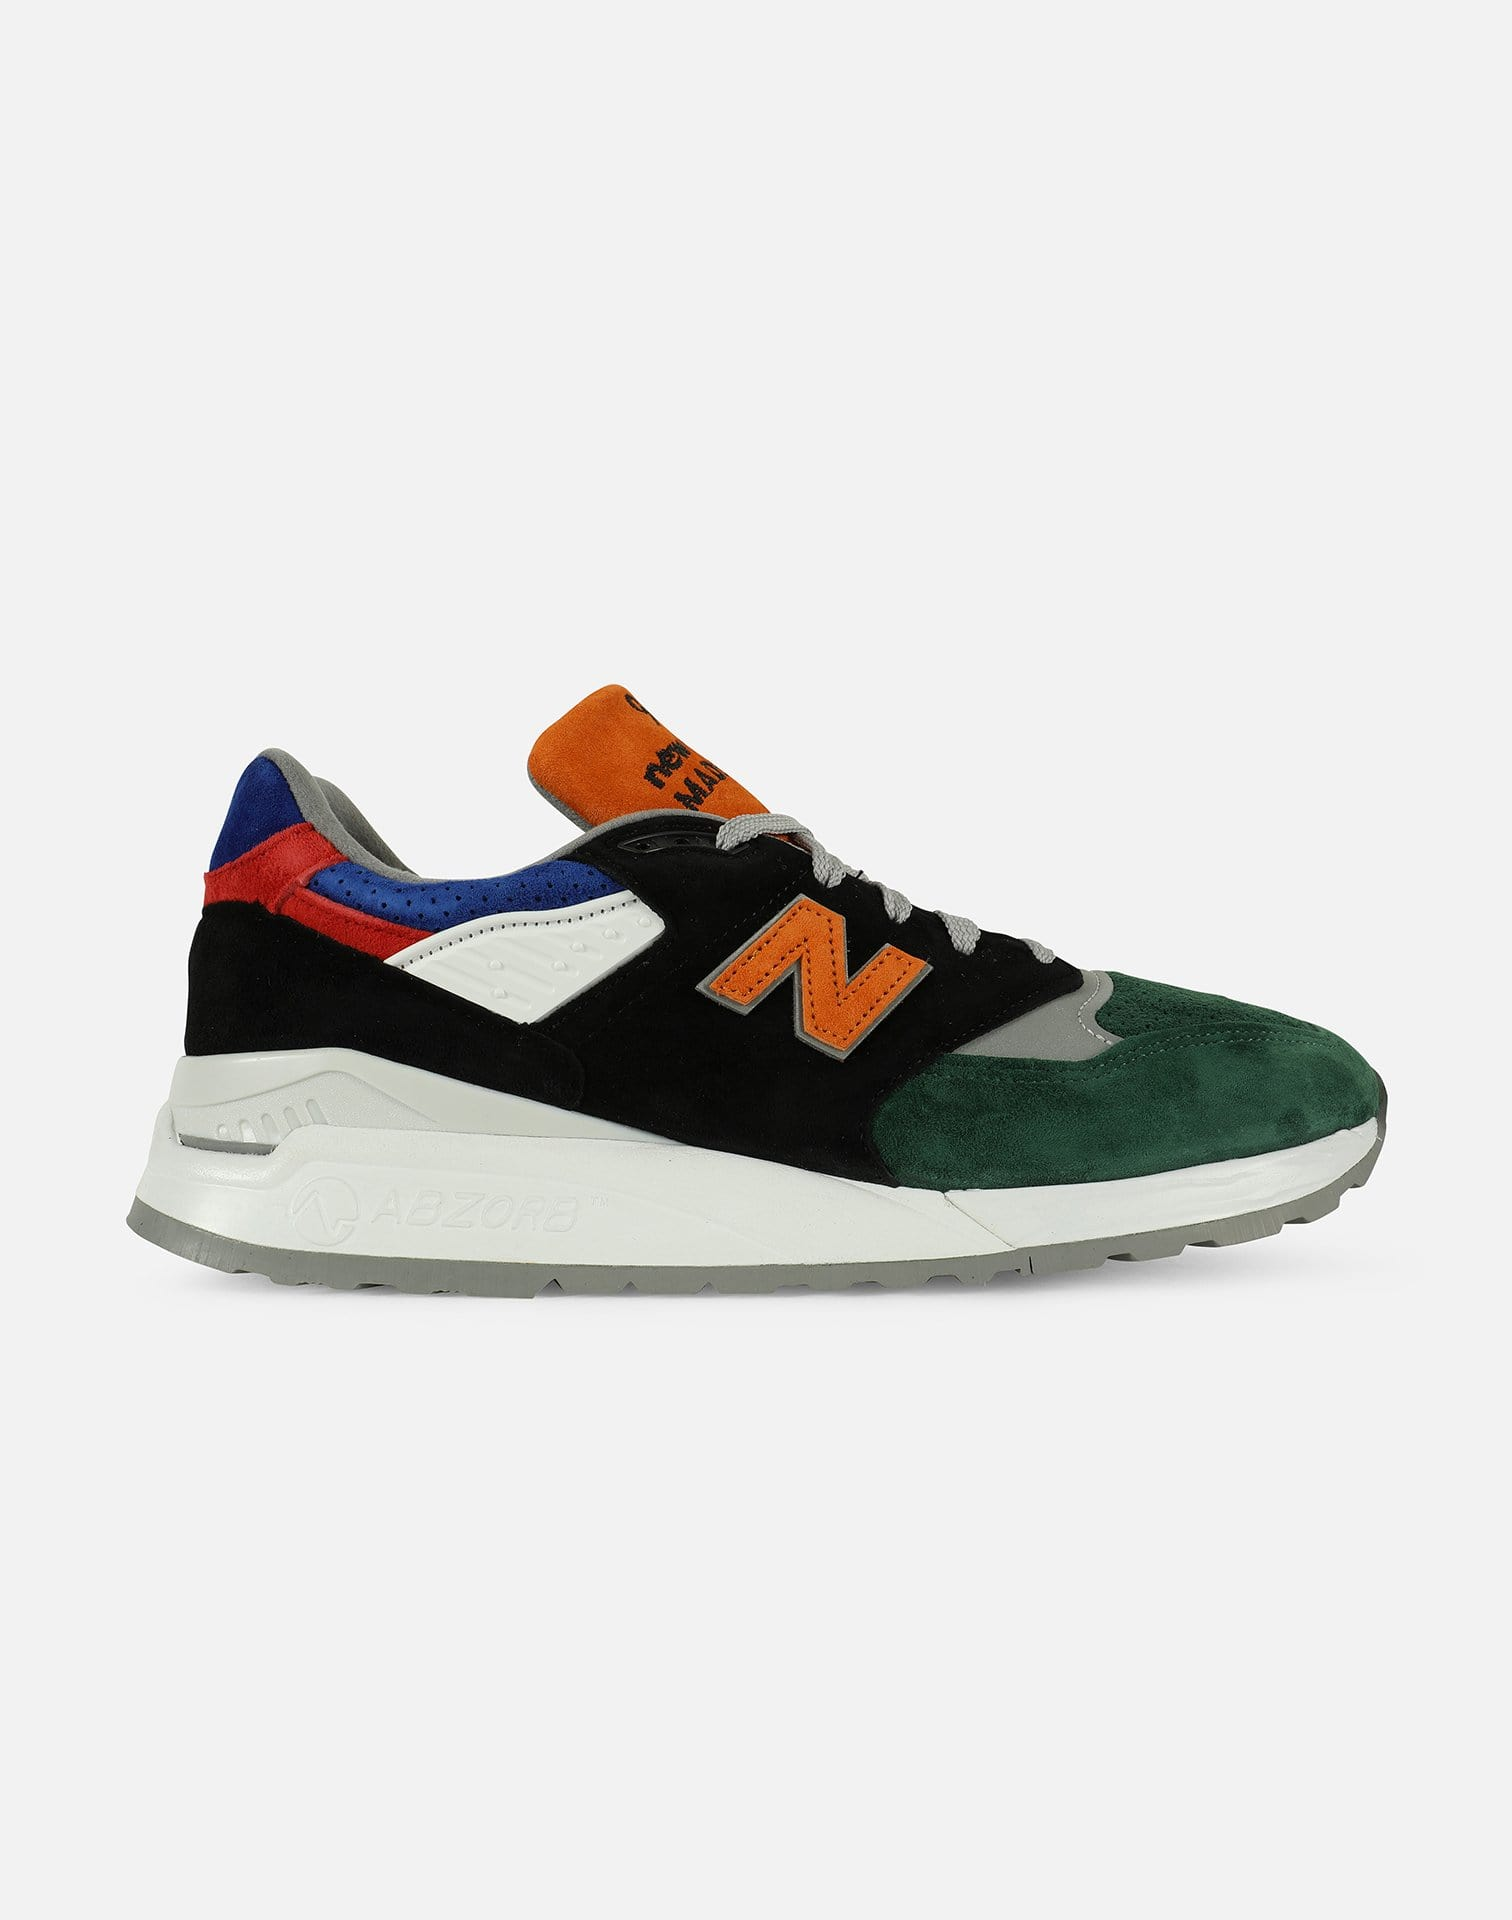 New Balance DTLR VILLA Exclusive 998 'Four 4 Four'